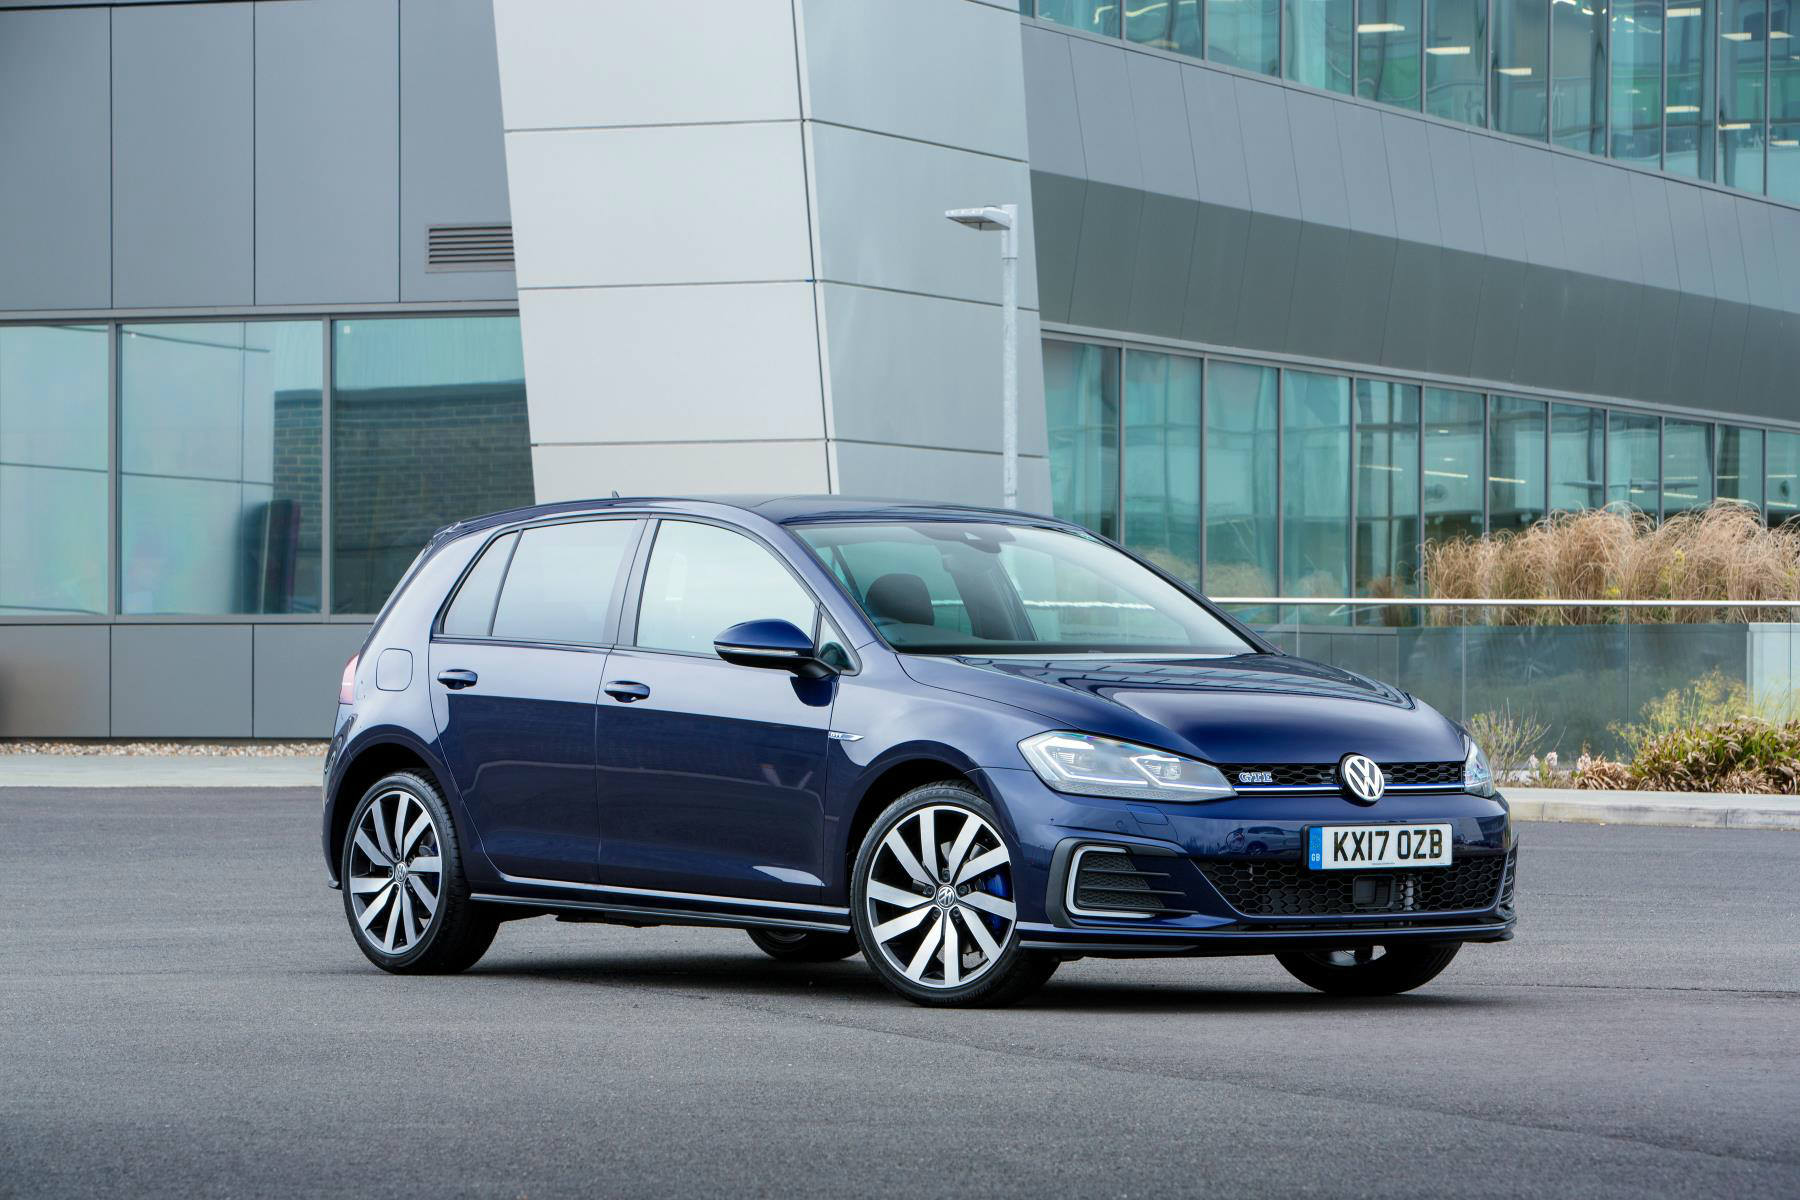 image of a blue volkswagen golf gte car exterior